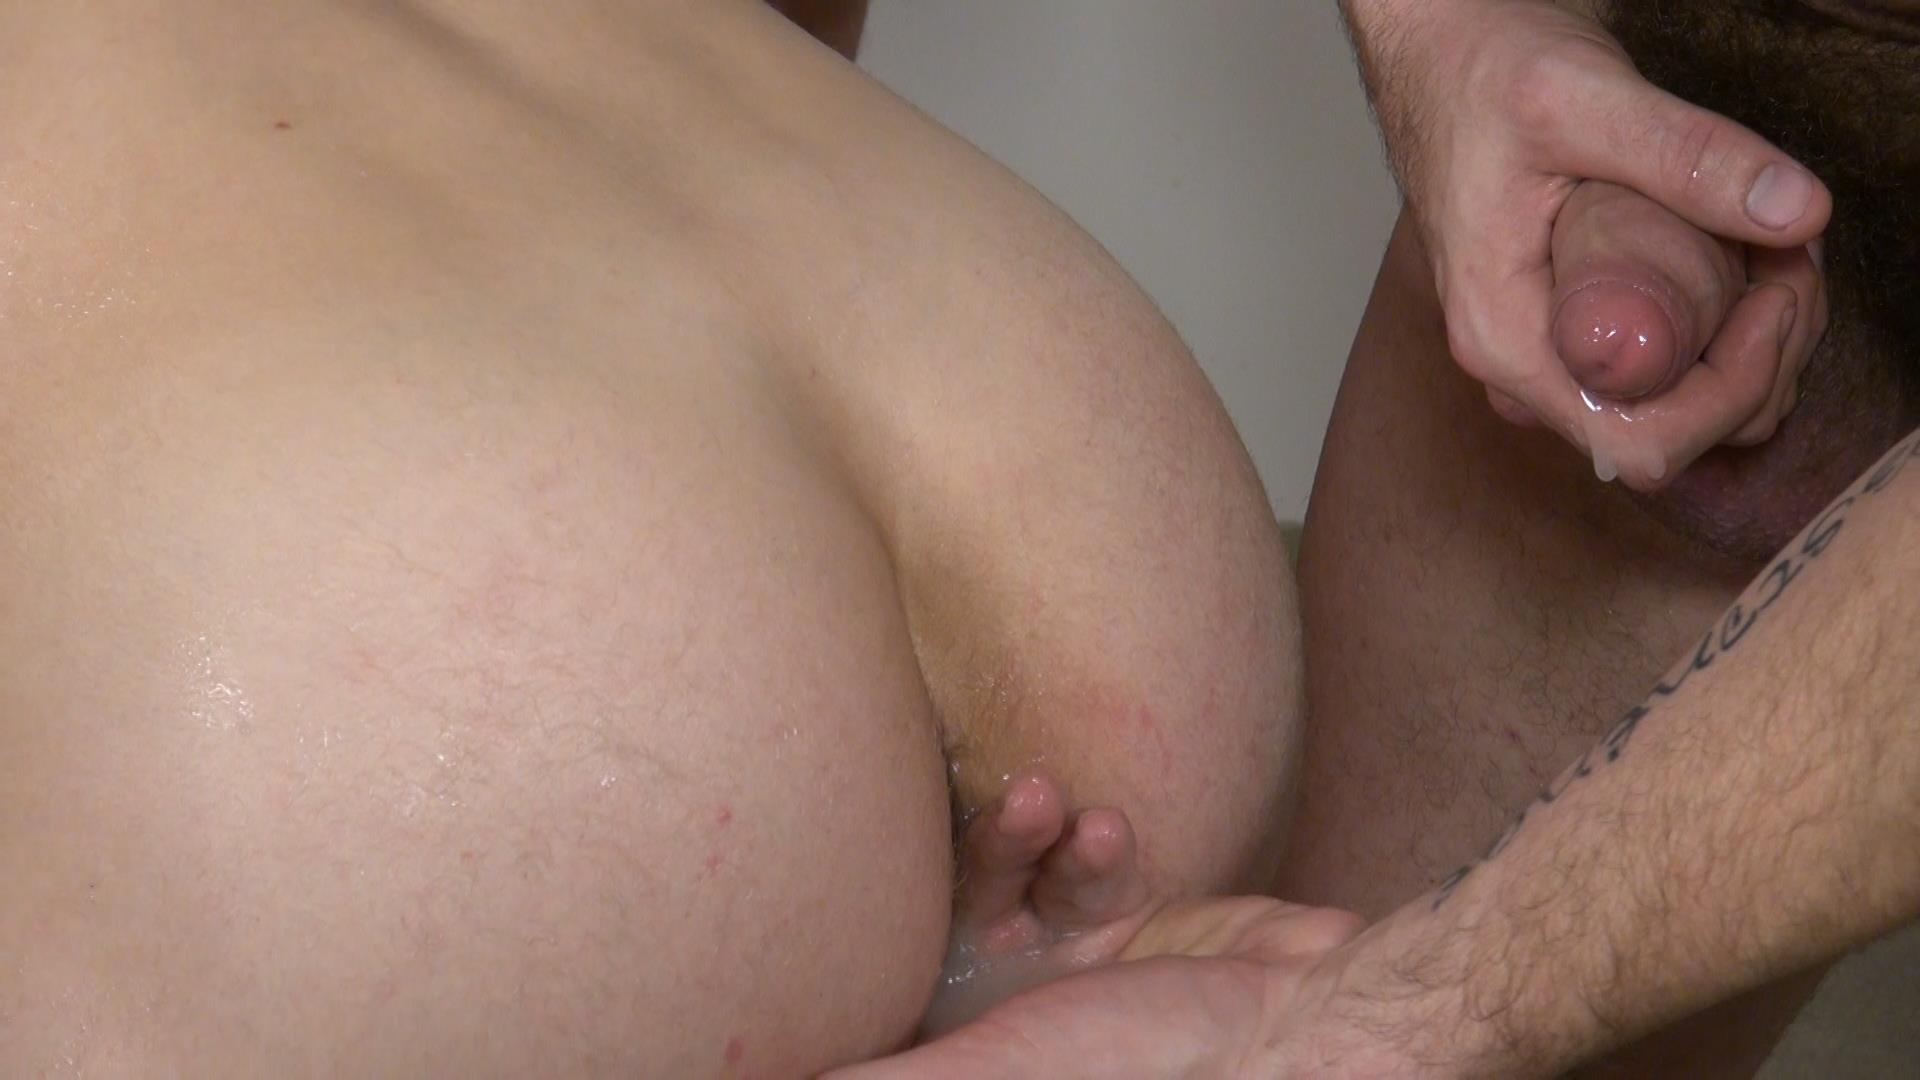 Raw-and-Rough-Bareback-Gay-Sex-Orgy-Amateur-Gay-Porn-06 Six Hairy Hung Guys Pounding A Bottom At A Bareback Sex Party